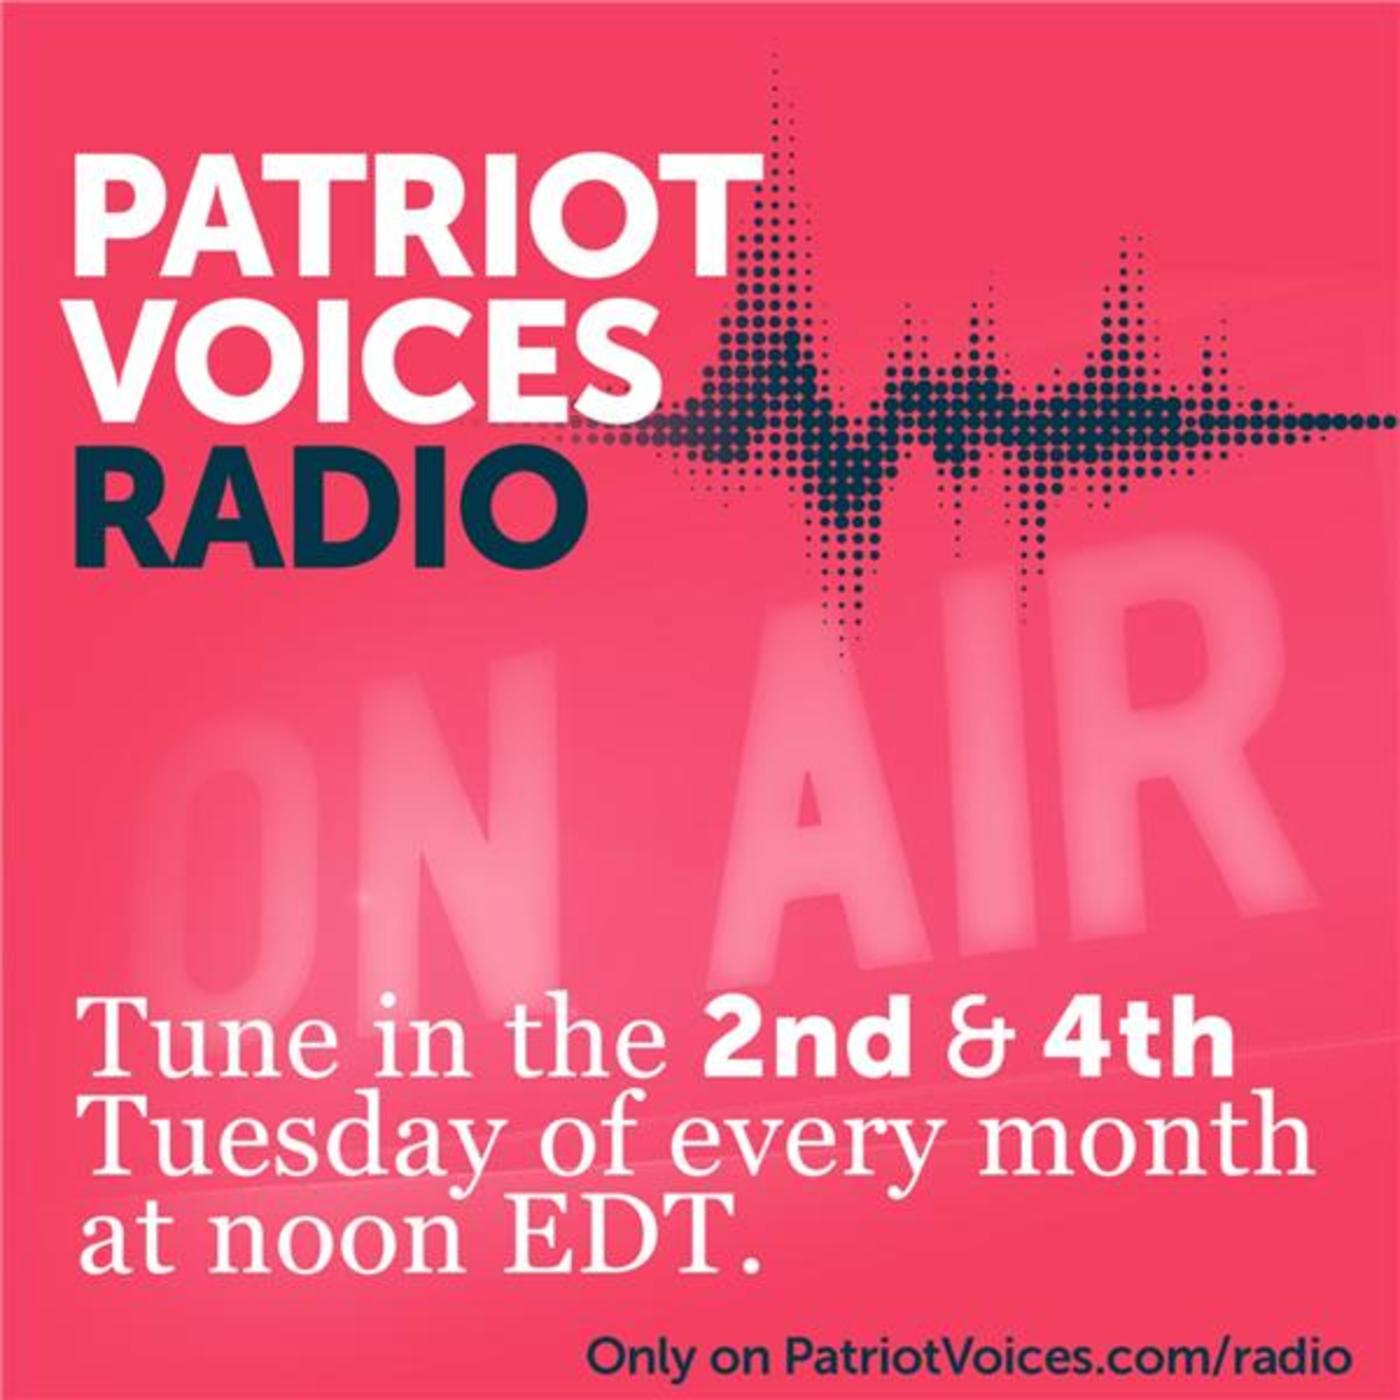 Patriot Voices Radio